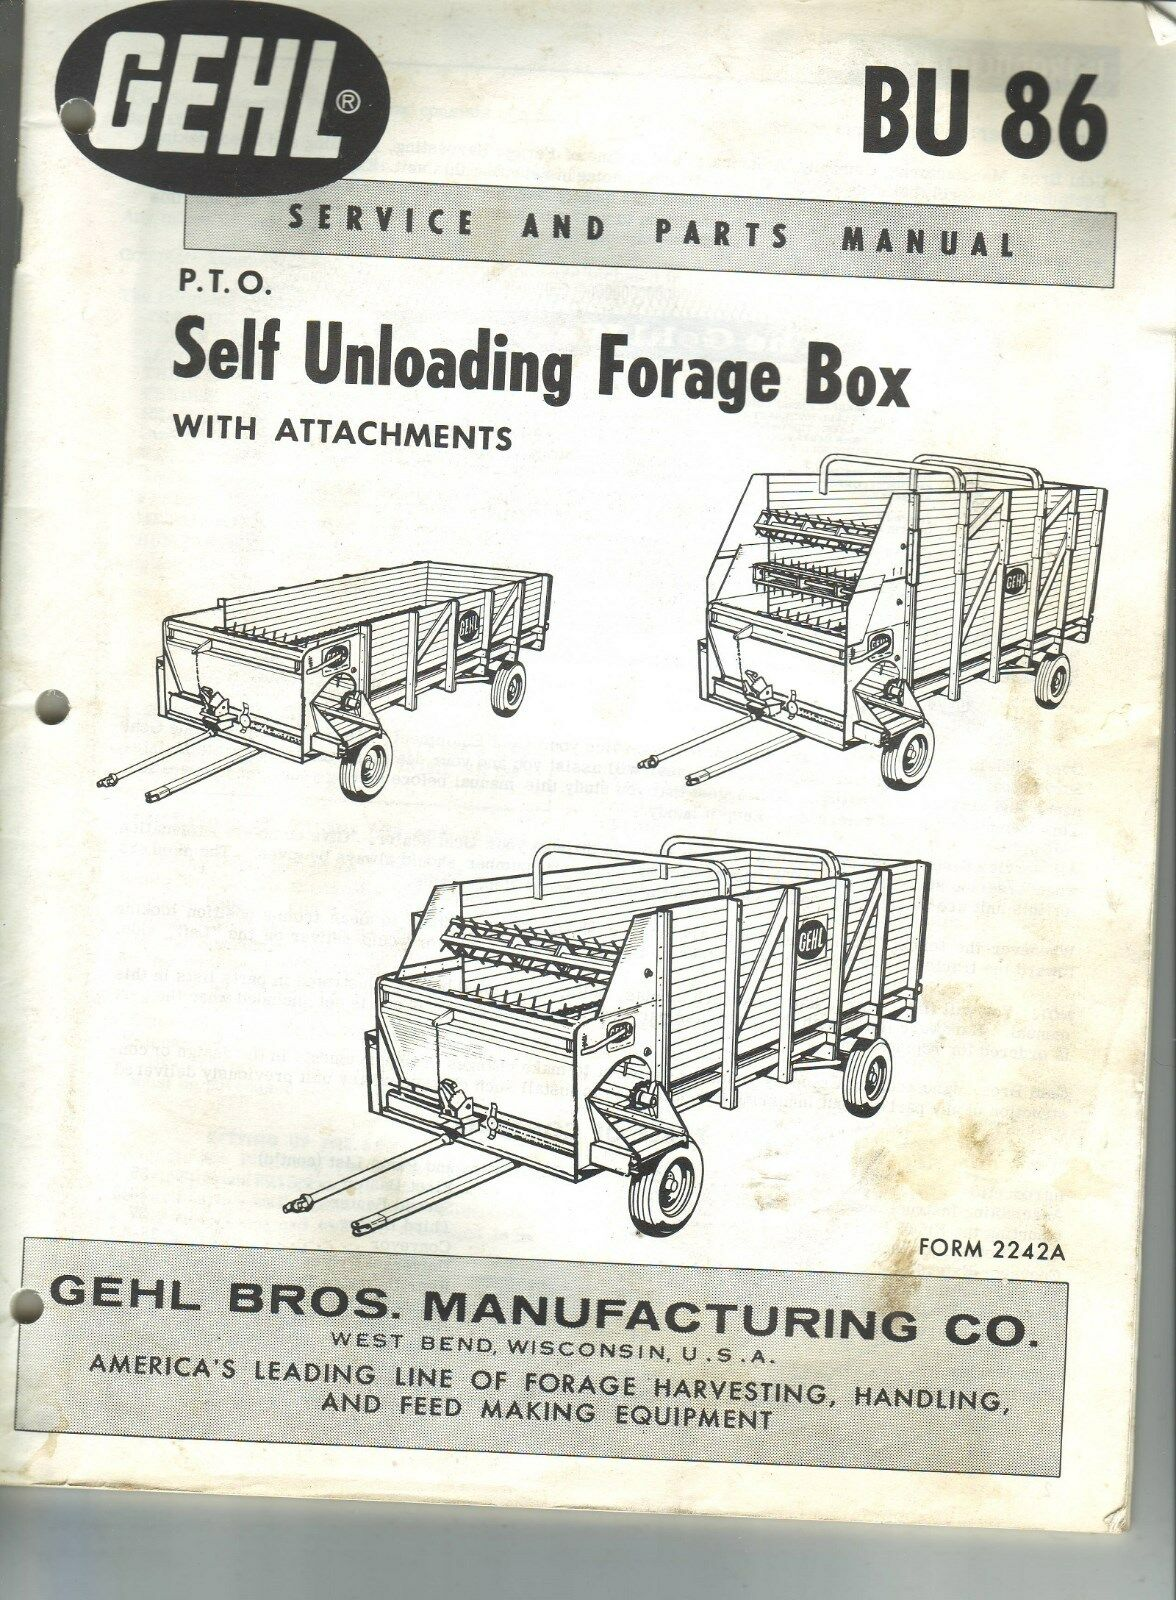 Gehl Self Unloading Forage Box 1 of 1Only 1 available ...